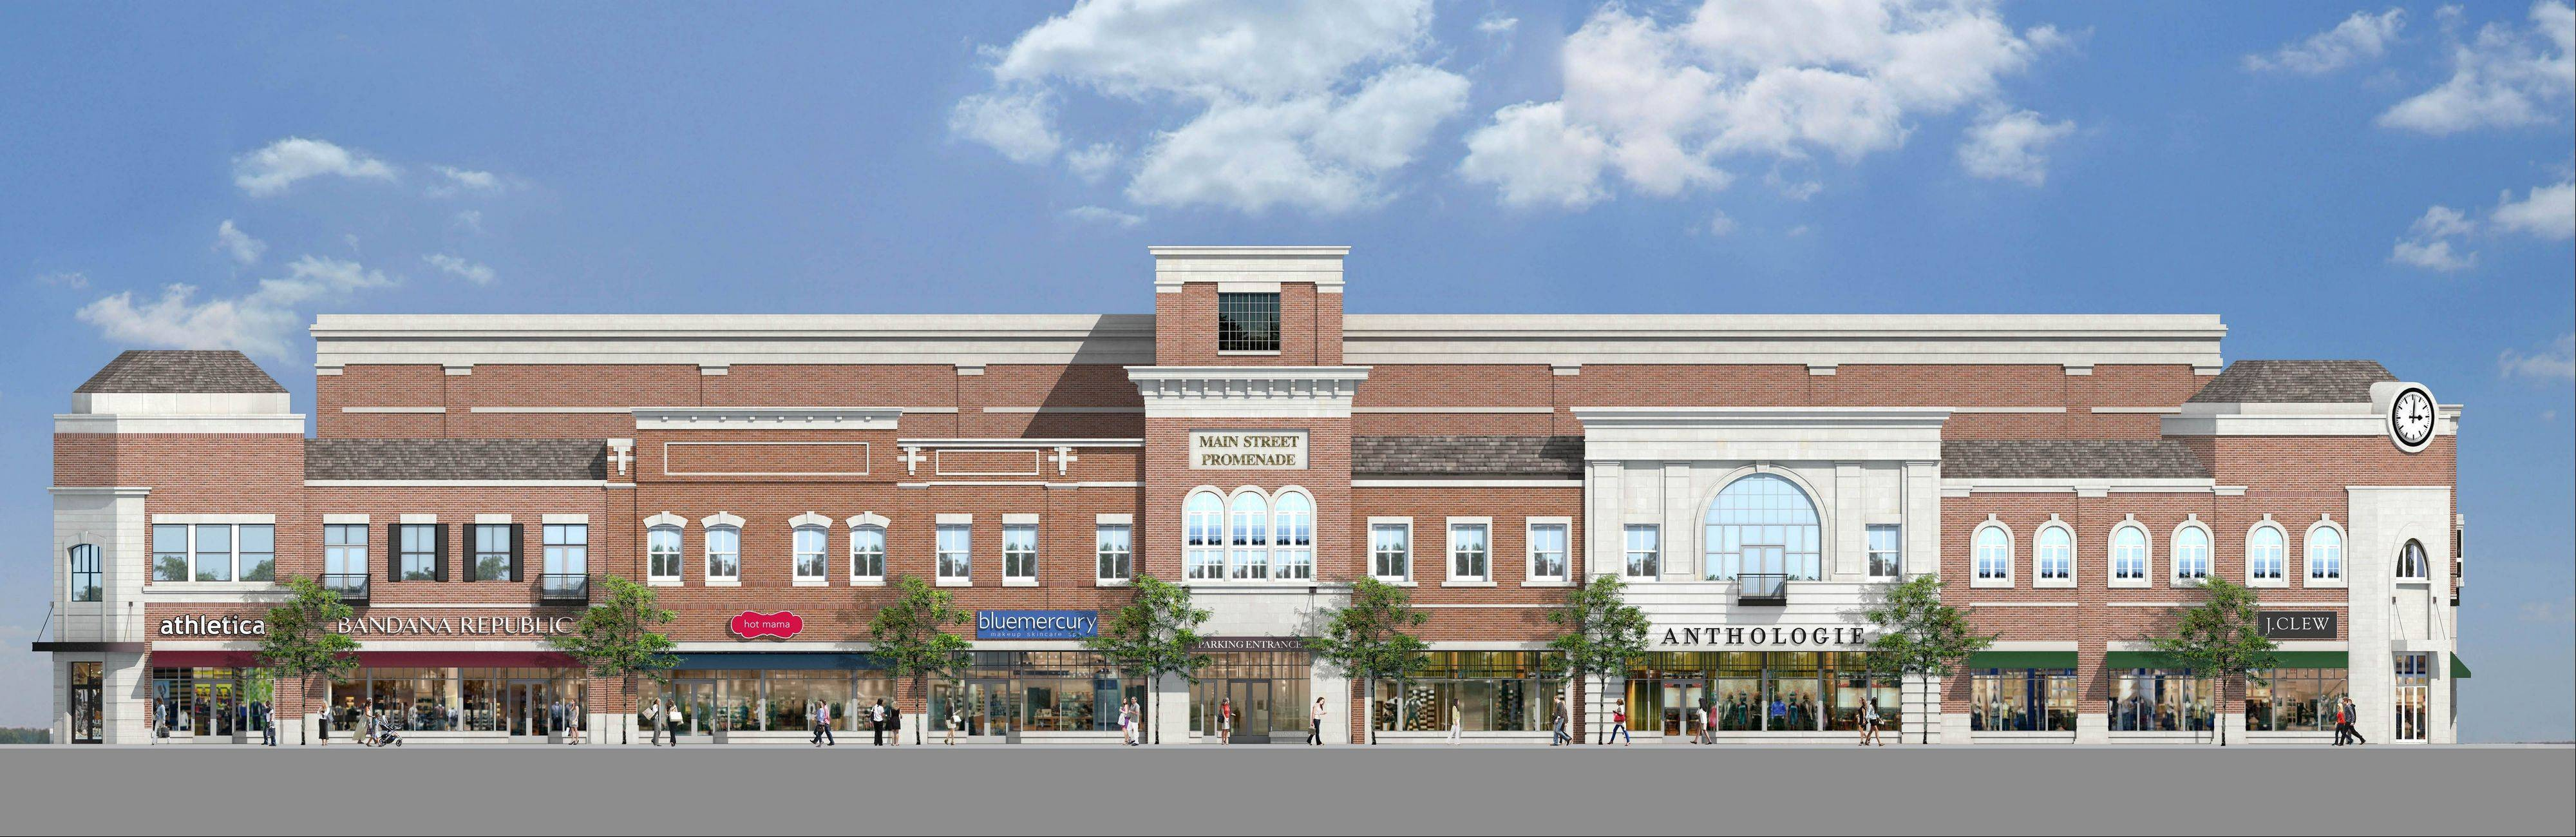 The two-story Main Street Promenade East development will line the east side of Main Street from Benton to Van Buren Avenues, featuring some of the stores shown, including Hot Mama, Bluemercury and Anthropologie, and some others, including Michael Graham Salon and Spa, Frost Gelato and DavidsTea.